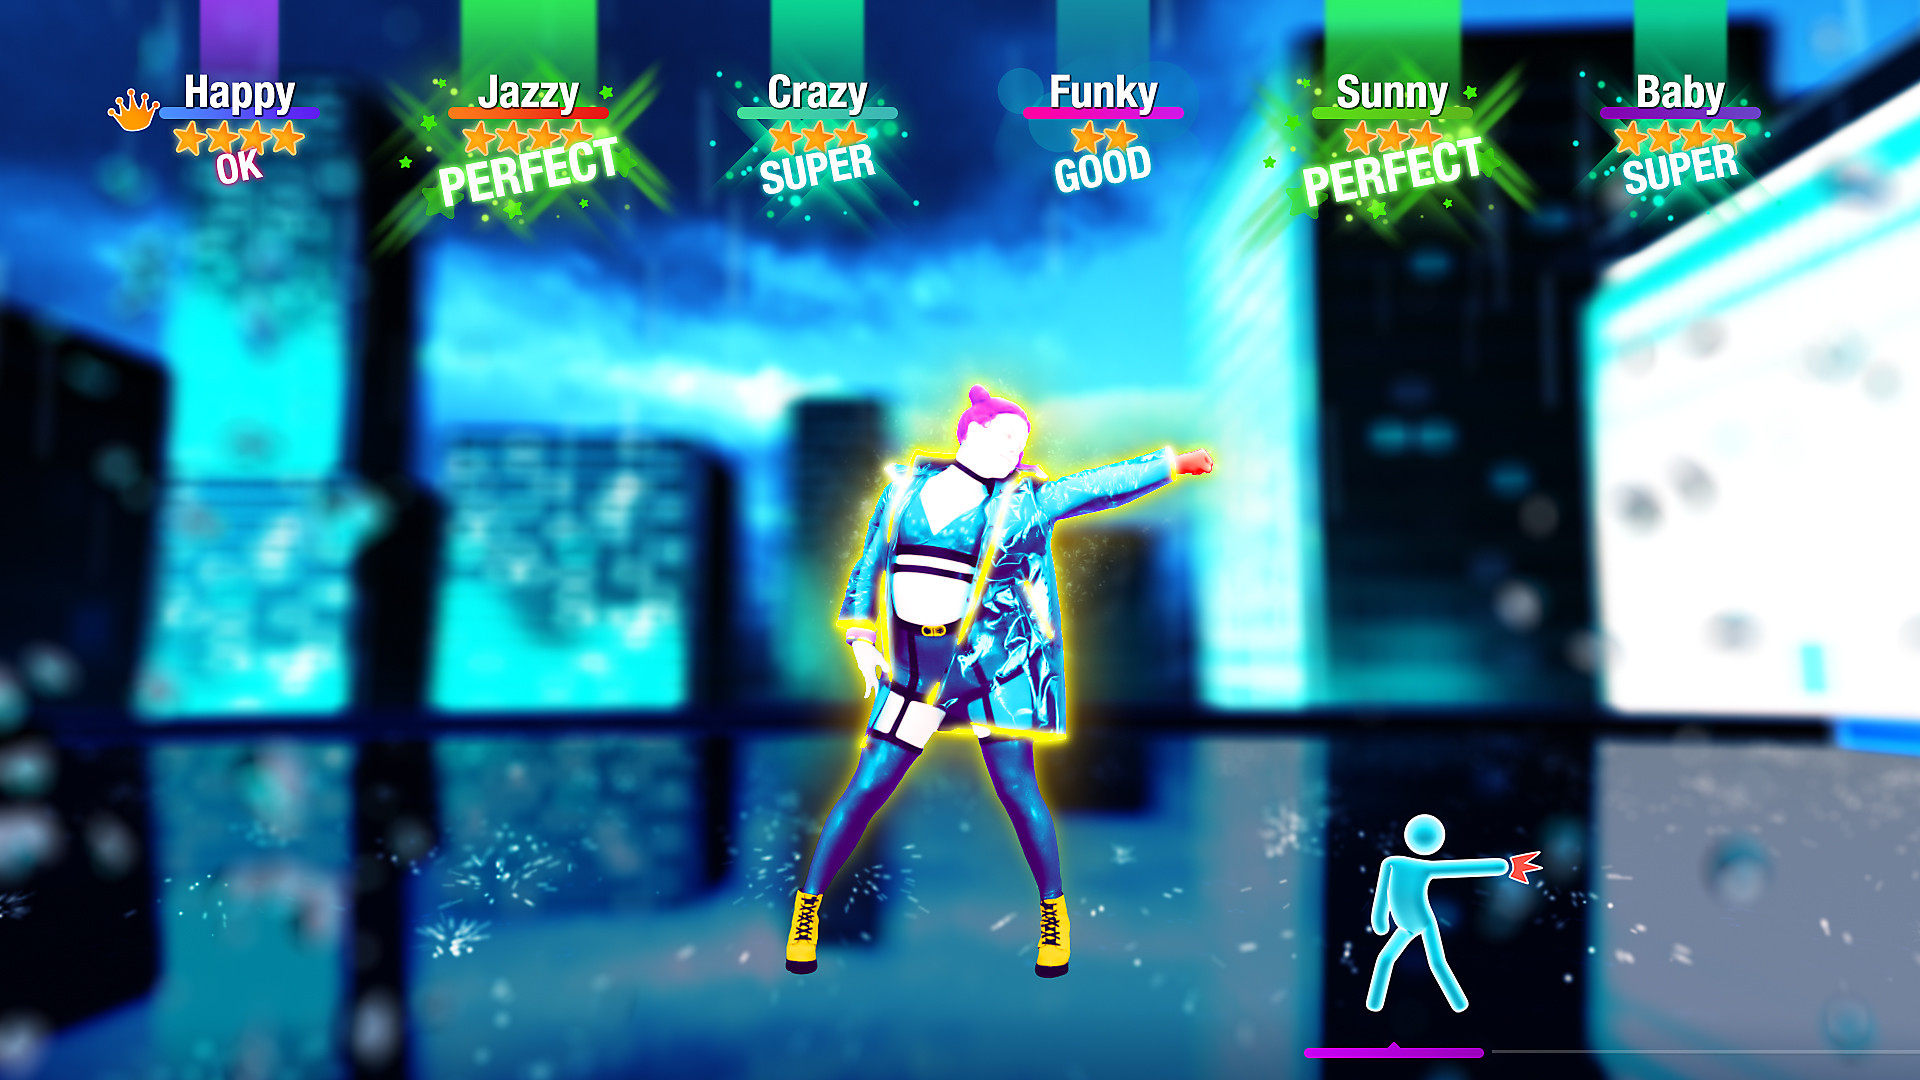 Ps4 Games Coming Out In 2020.Just Dance 2020 Game Ps4 Playstation